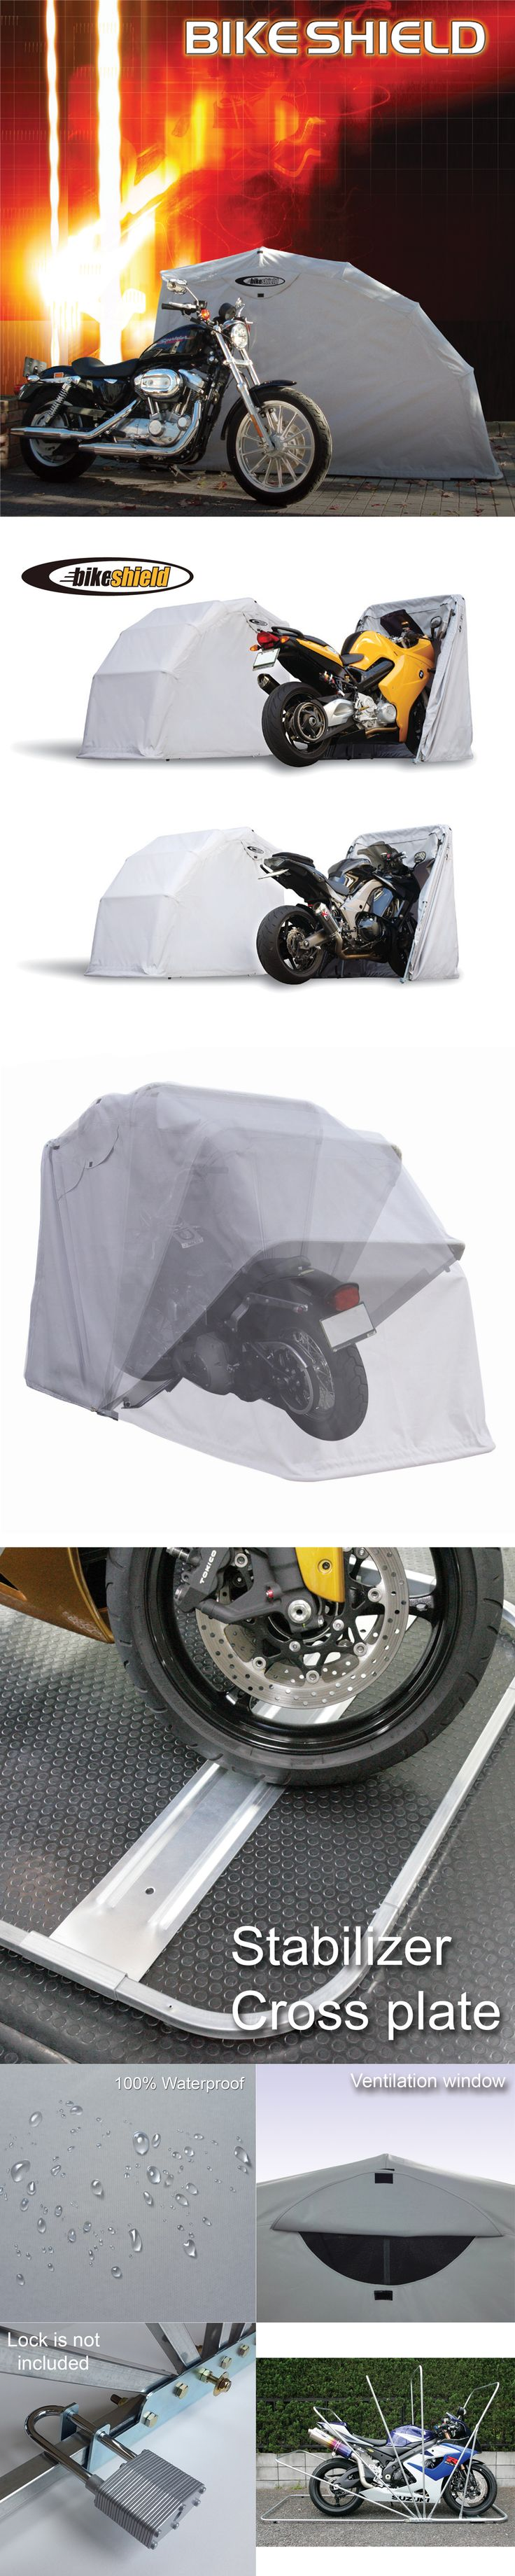 You can buy form ebay and amazon  thebikeshield.com